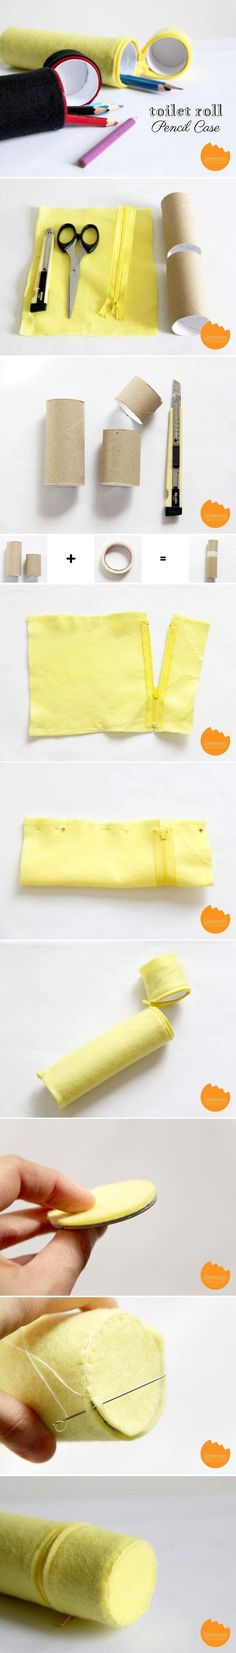 DIY Toilet Roll Pencil Case: